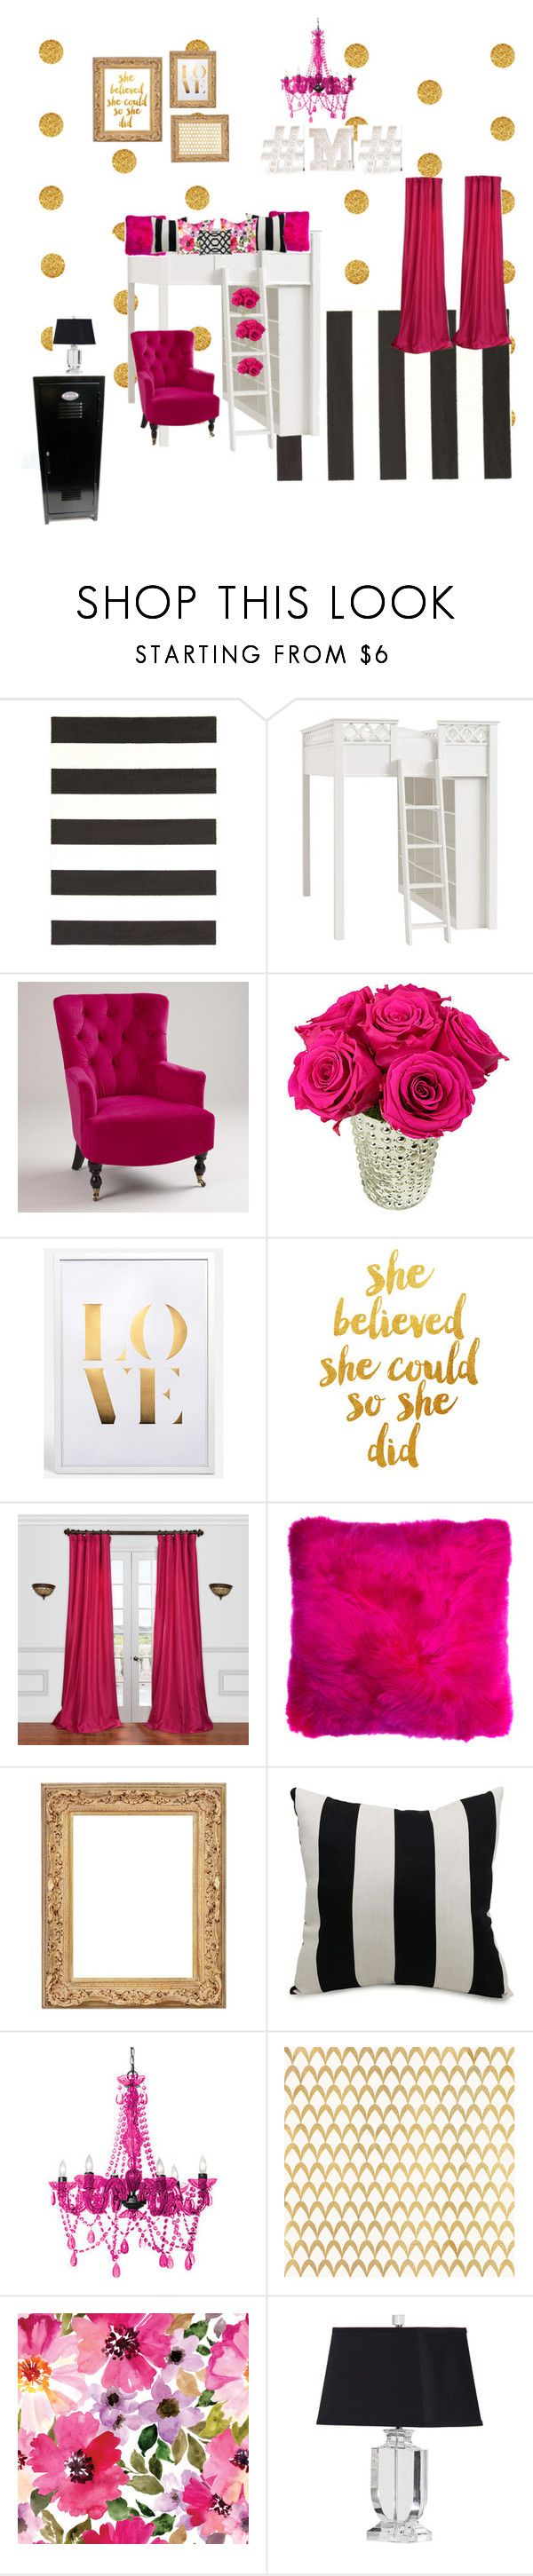 """""""tween bedroom"""" by meghangiron1 ❤ liked on Polyvore featuring interior, interiors, interior design, home, home decor, interior decorating, Surya, PBteen, Cost Plus World Market and WALL"""